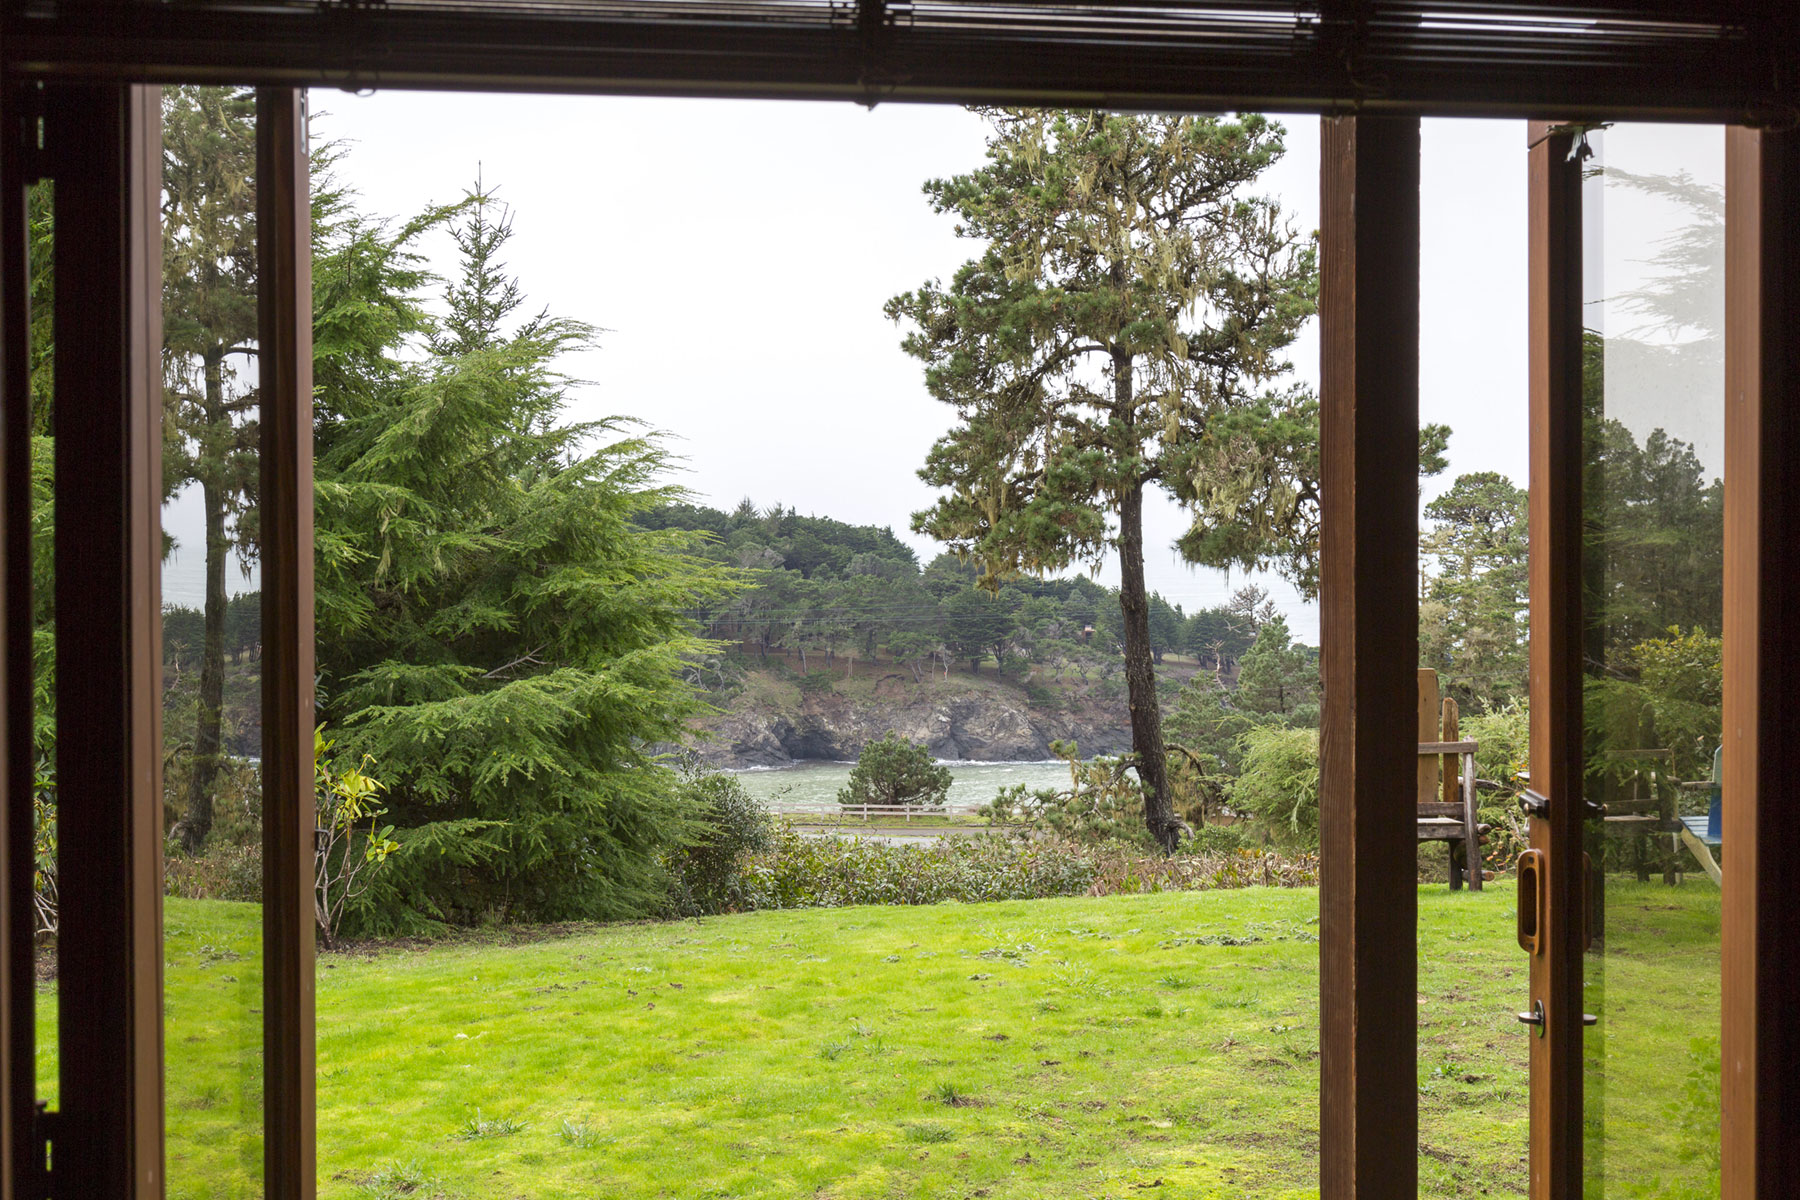 A view out to the lawn and the ocean in the distance from the Manzanita room